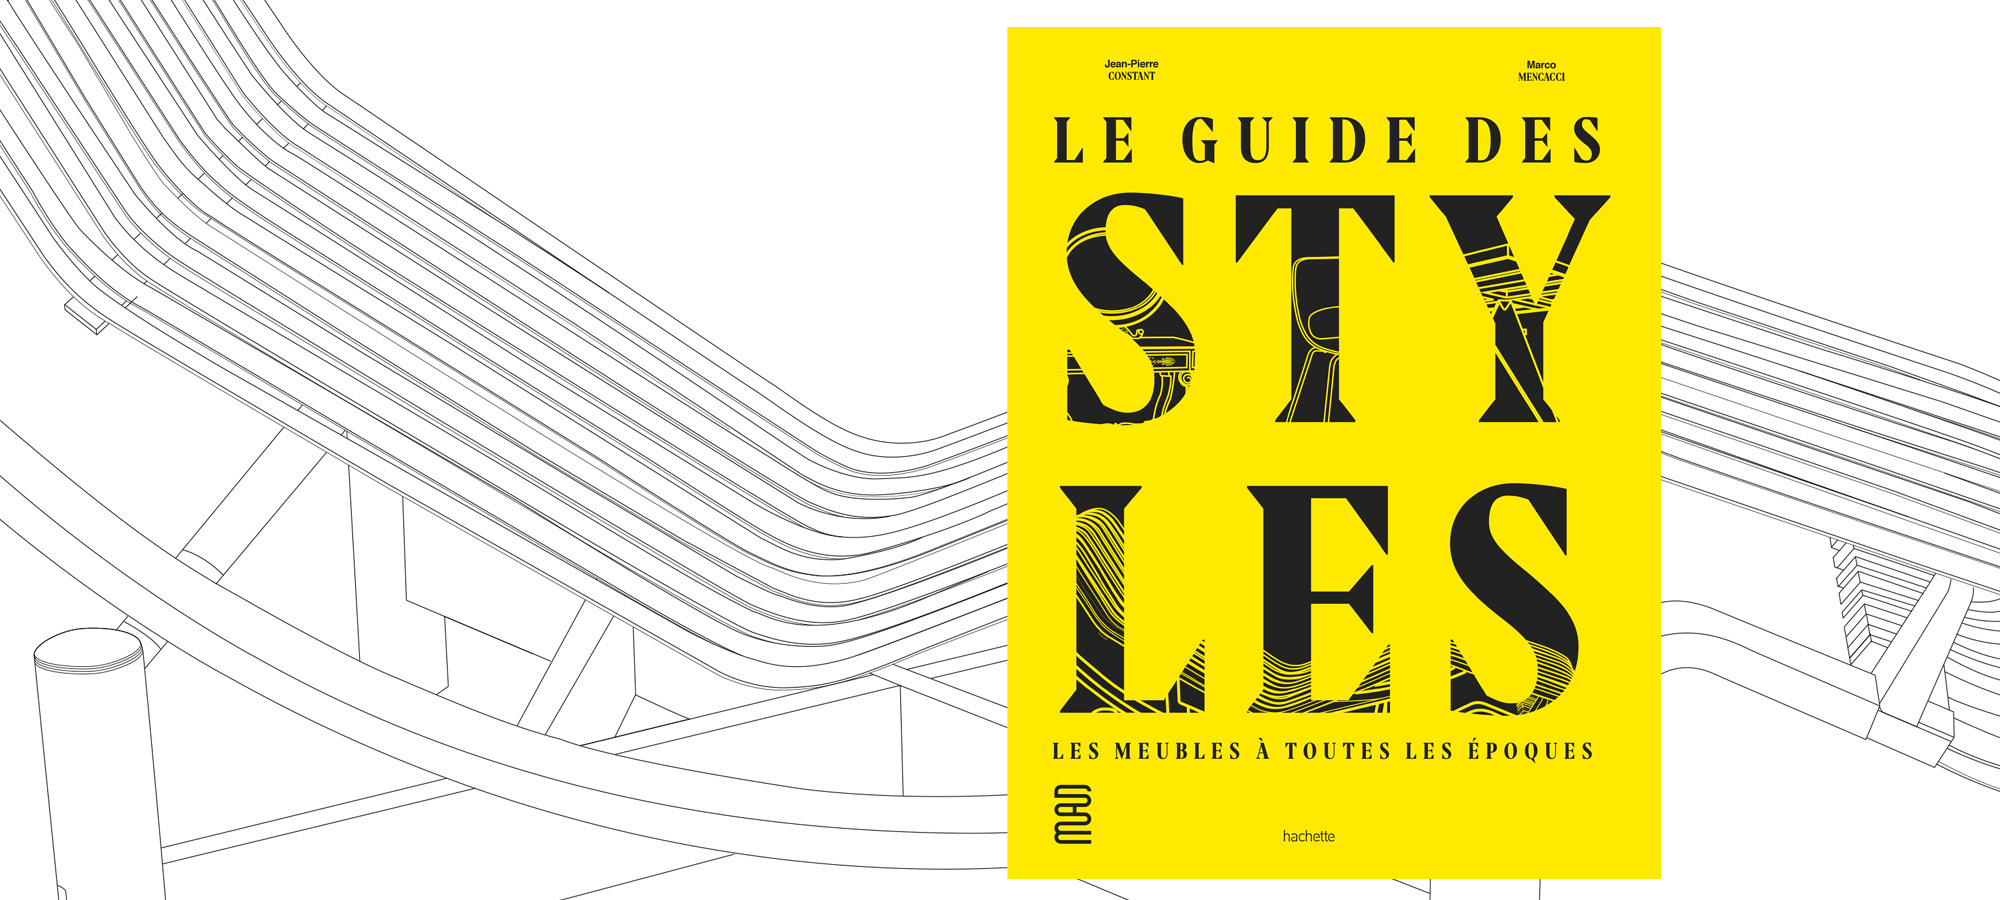 Marco Mencacci Project Guide Des Styles